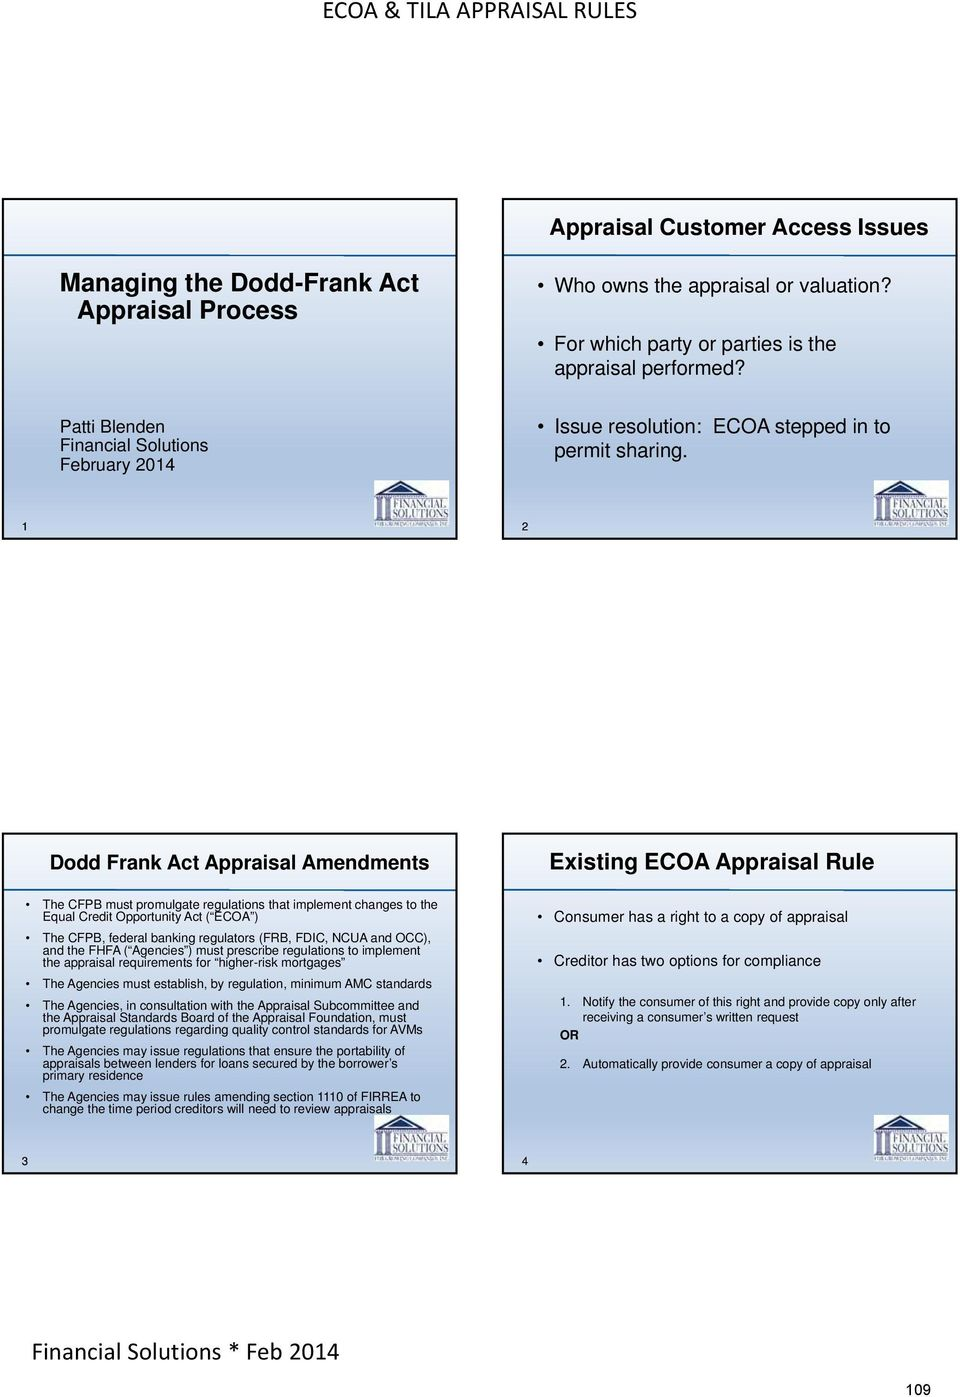 1 2 Dodd Frank Act Appraisal Amendments The CFPB must promulgate regulations that implement changes to the Equal Credit Opportunity Act ( ECOA ) The CFPB, federal banking regulators (FRB, FDIC, NCUA